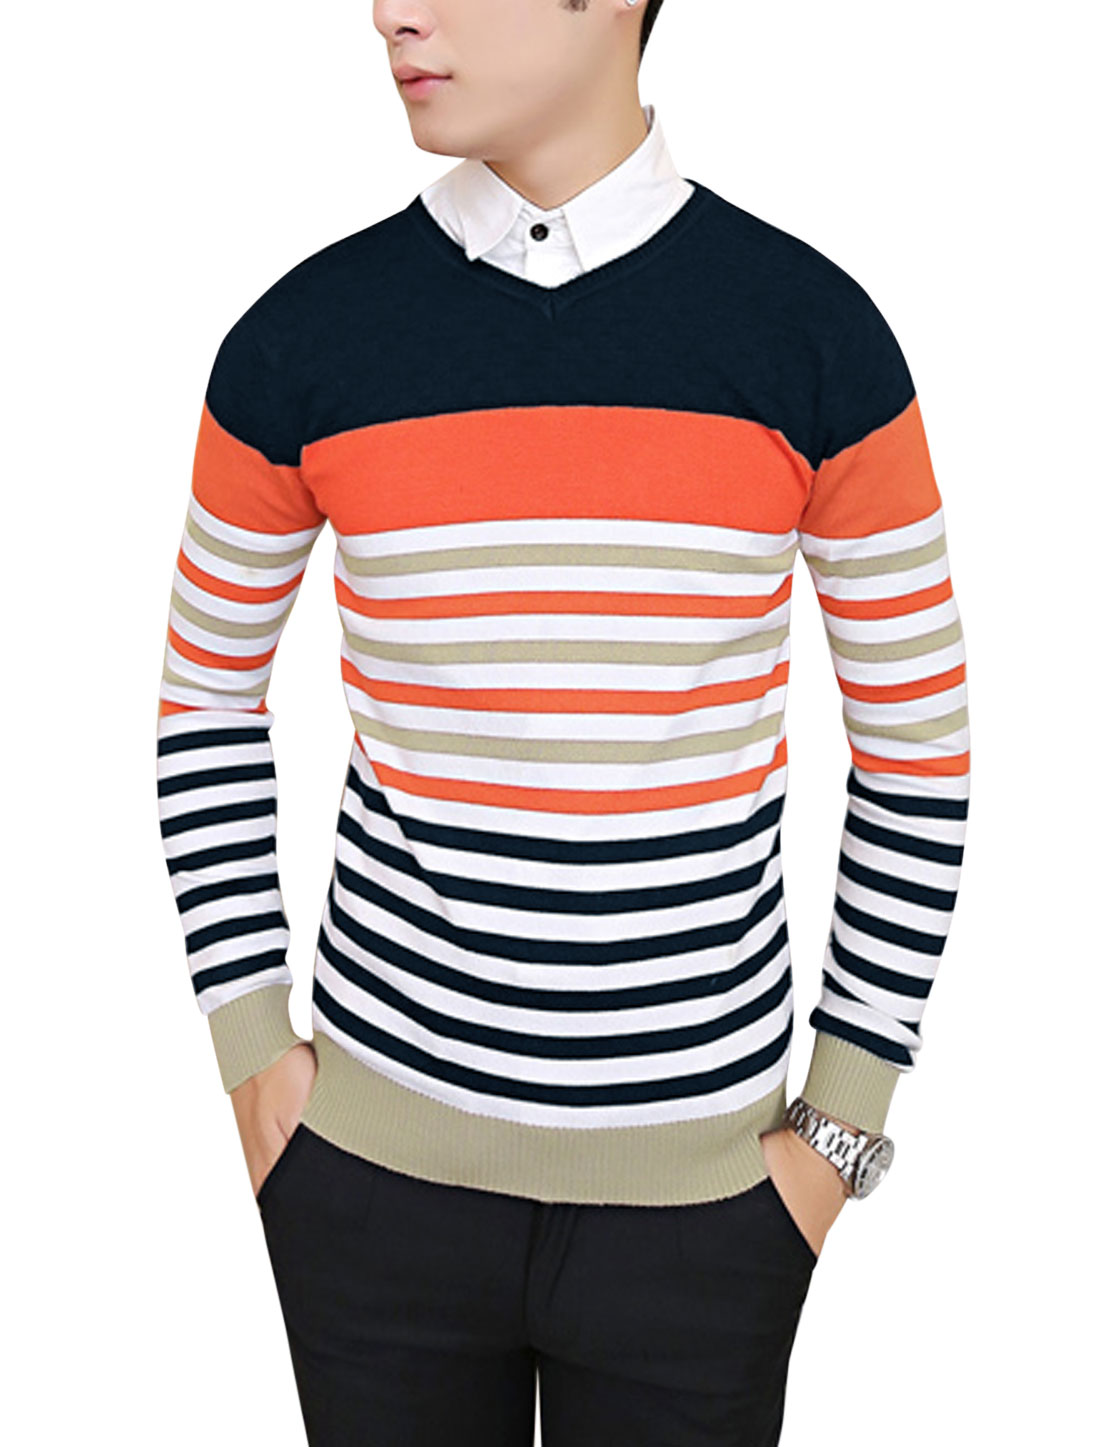 Men Slipover Bar Striped Long Sleeve Slim Knit Shirt Navy Blue S